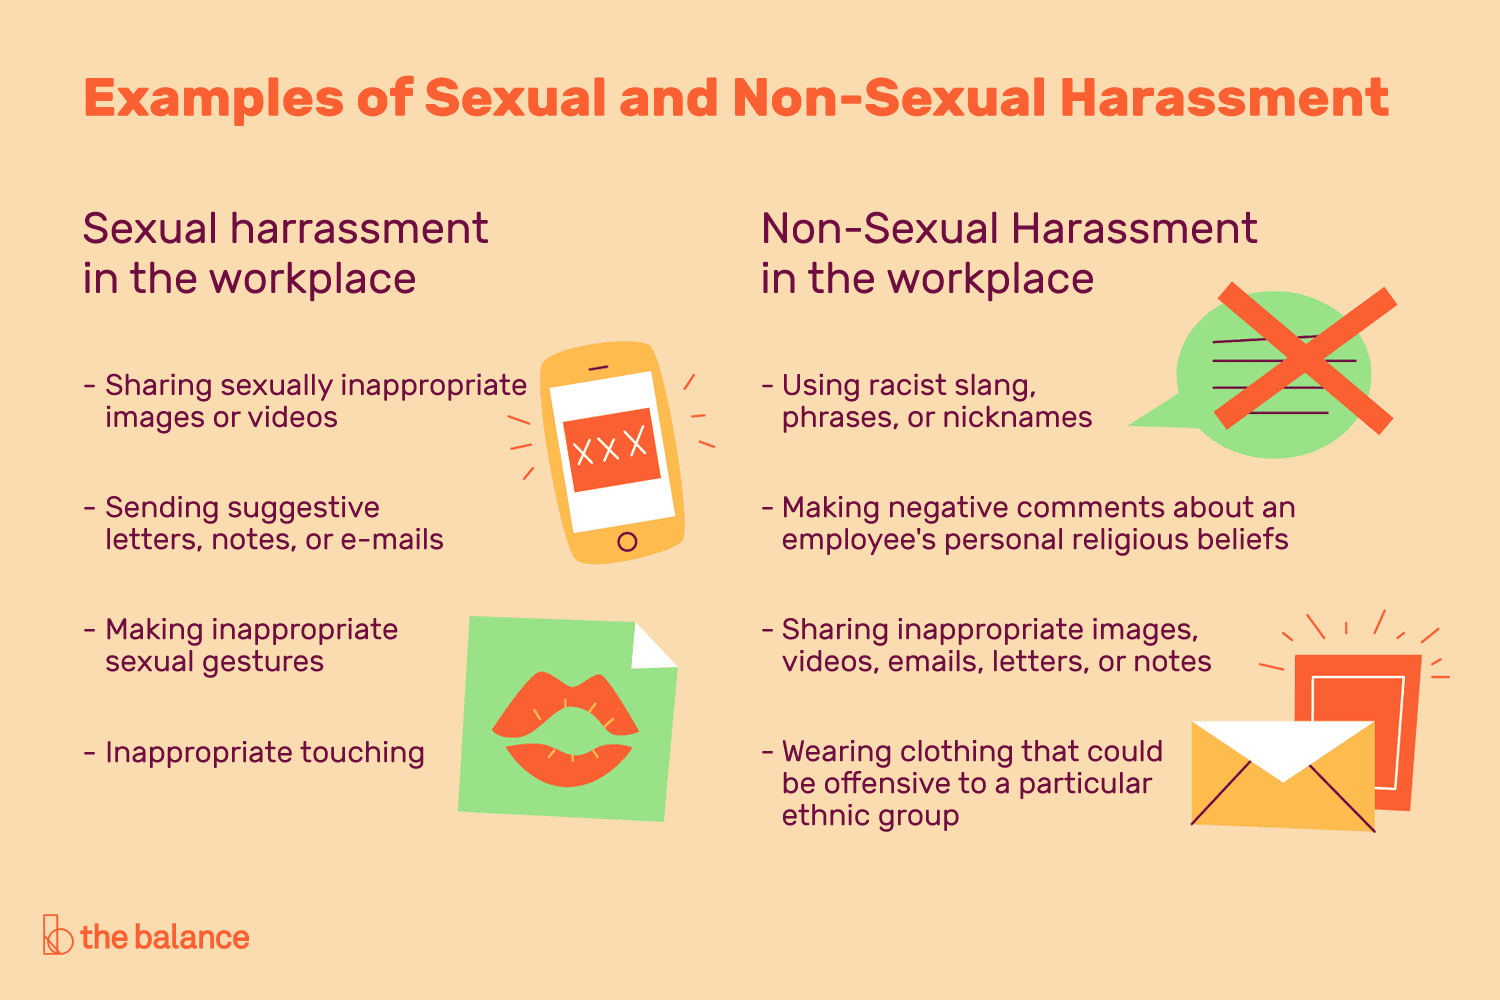 Examples of Sexual and Non-Sexual Harassment at Work